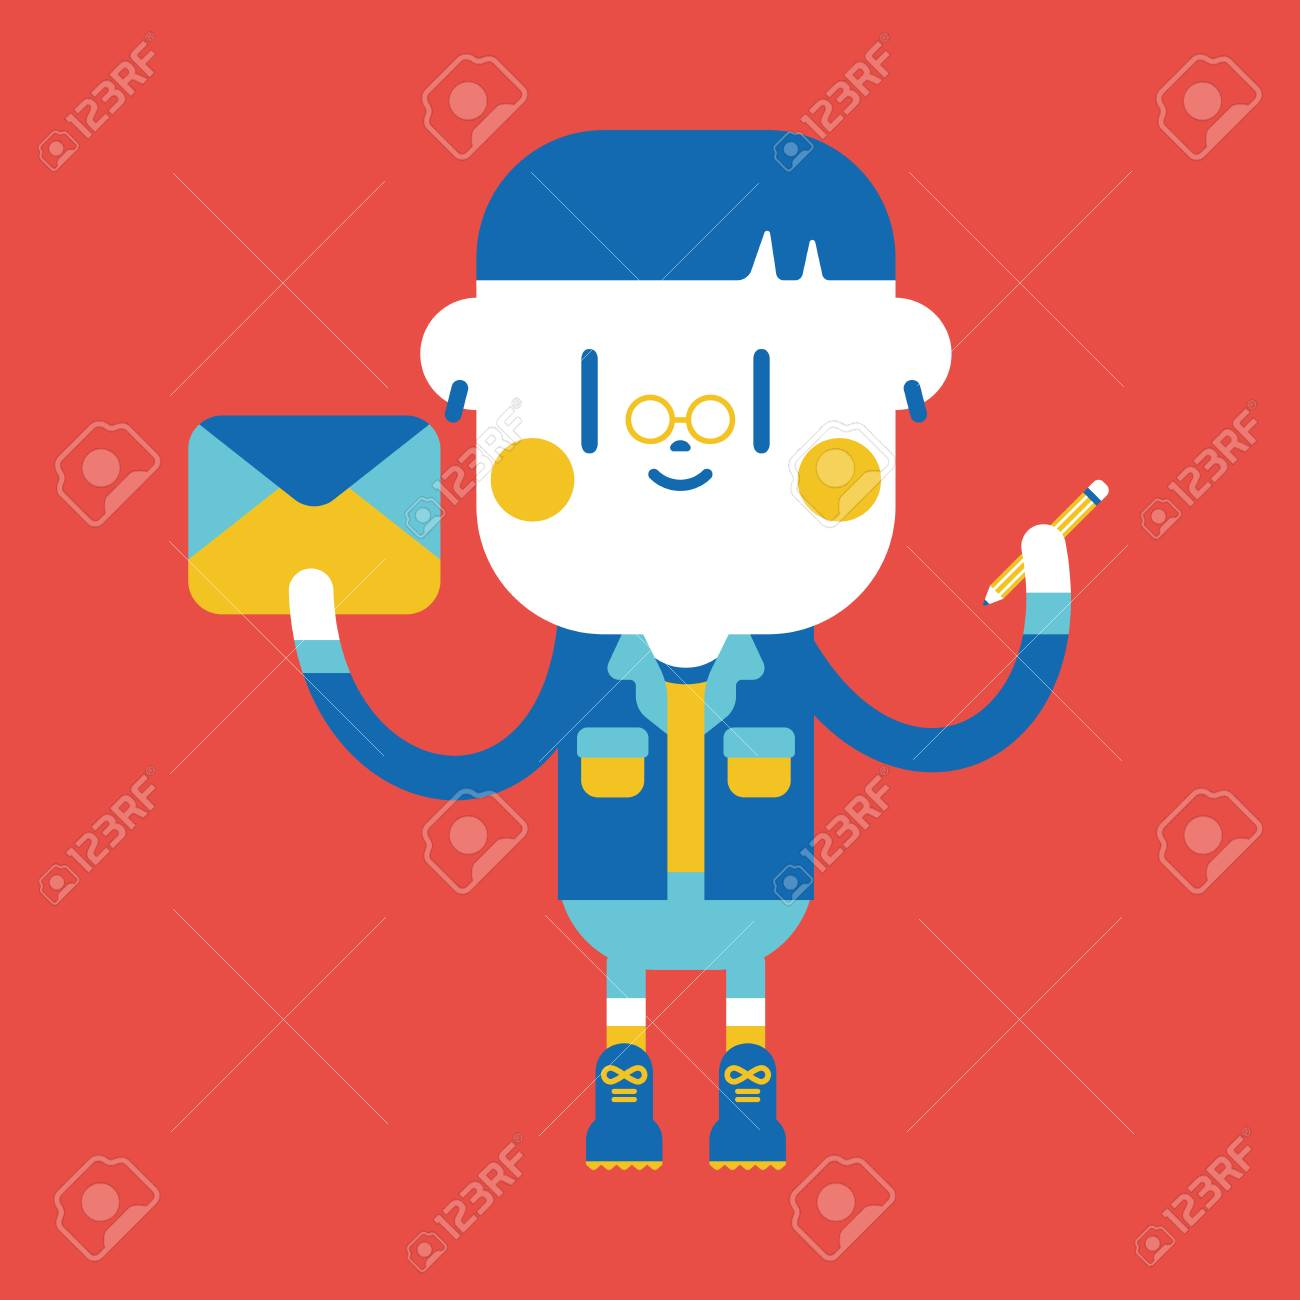 Character Illustration Design Boy Writing Letter Cartoon Royalty